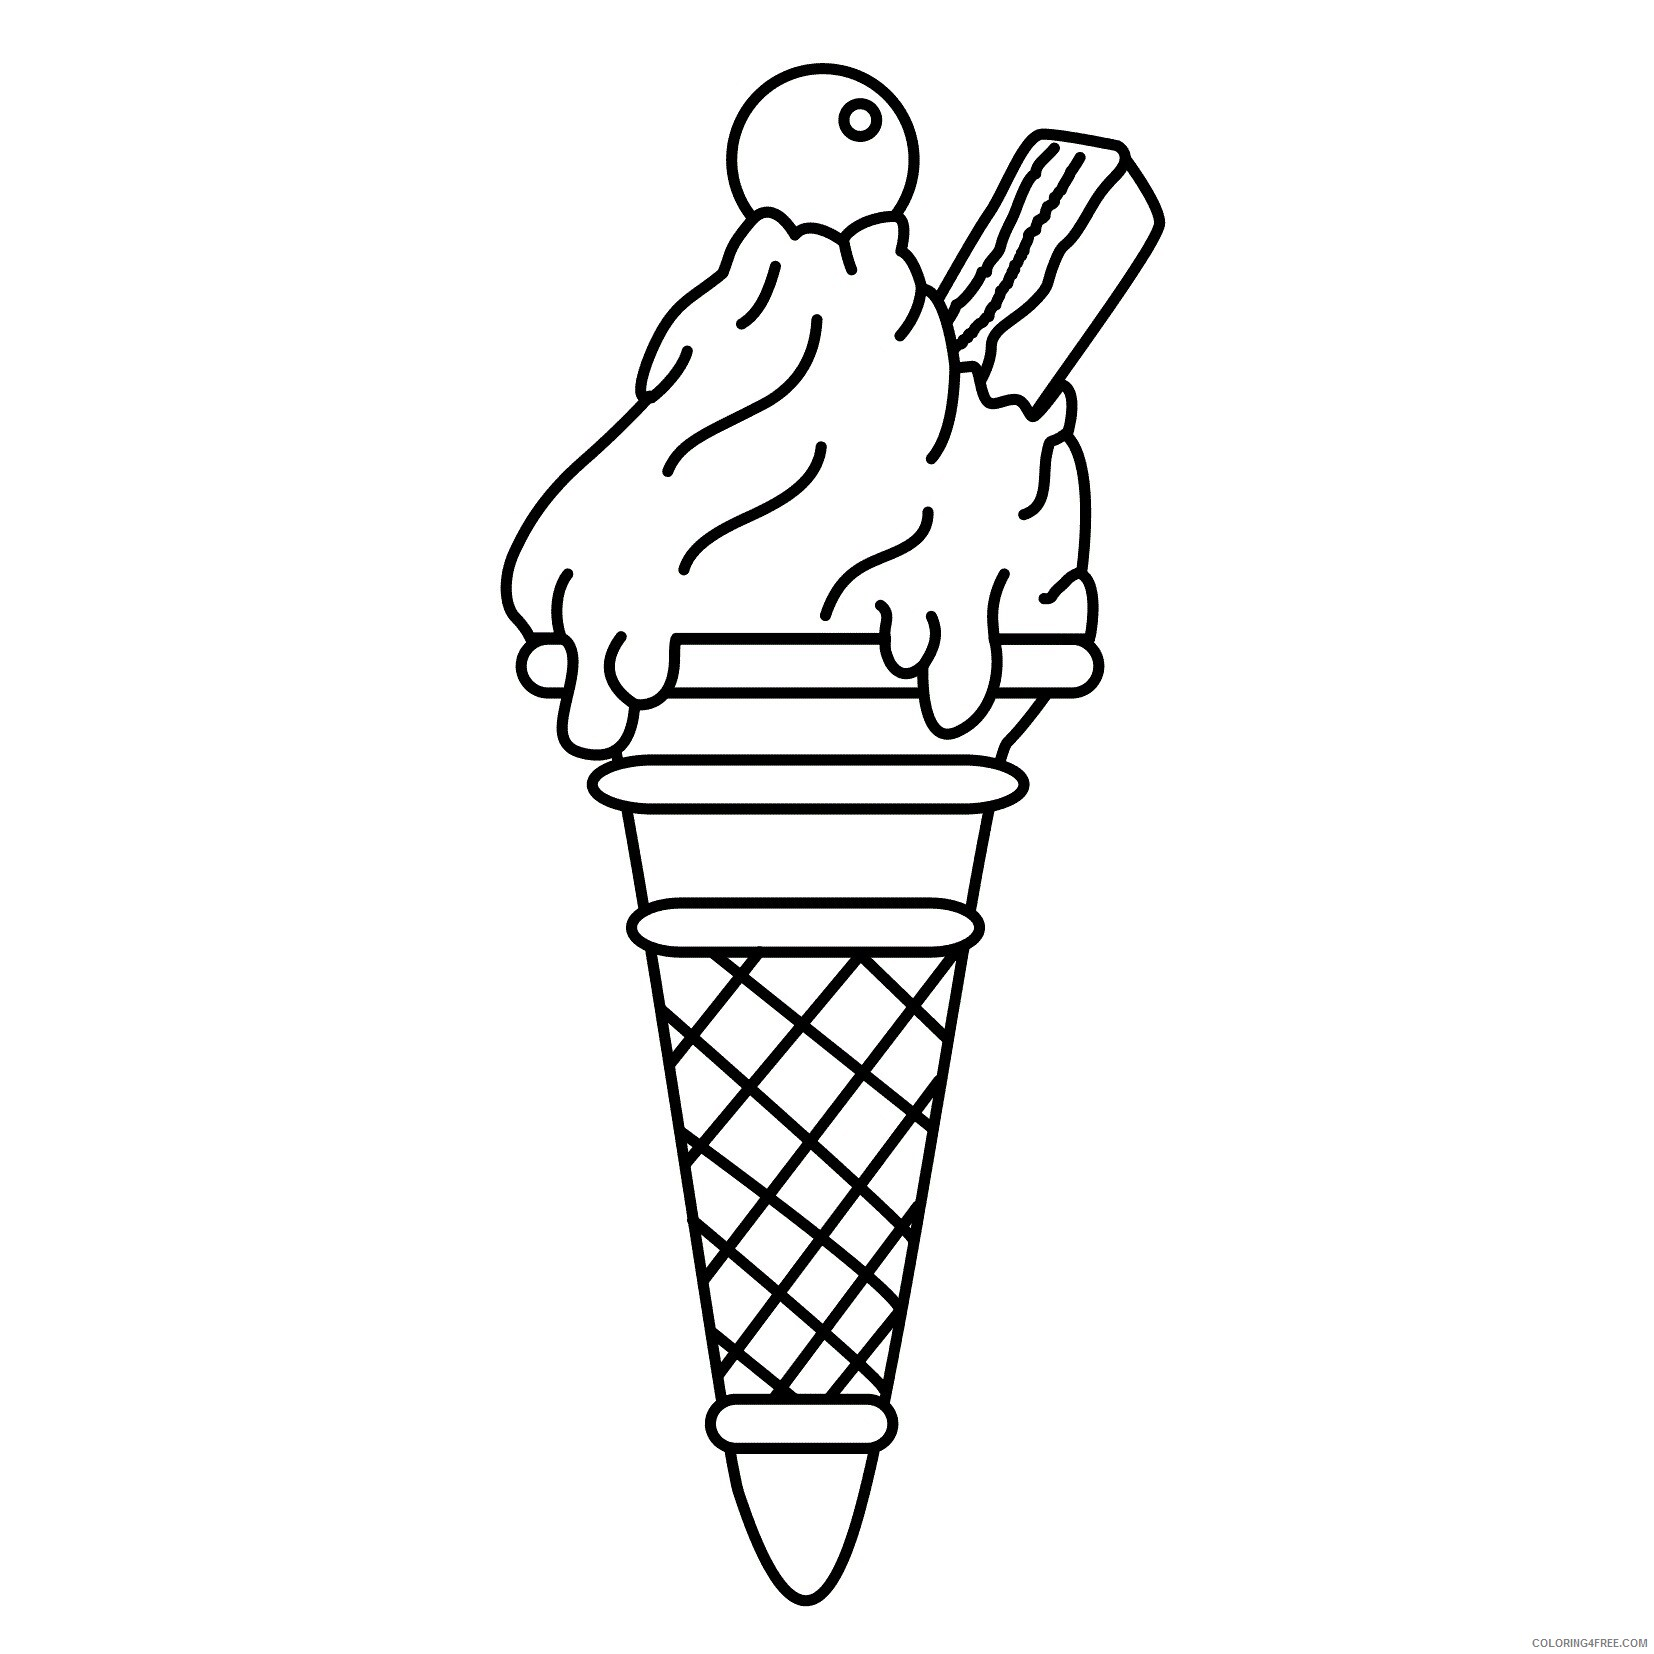 Ice Cream Coloring Pages for Kids Free Ice Cream Cone Printable 2021 354 Coloring4free